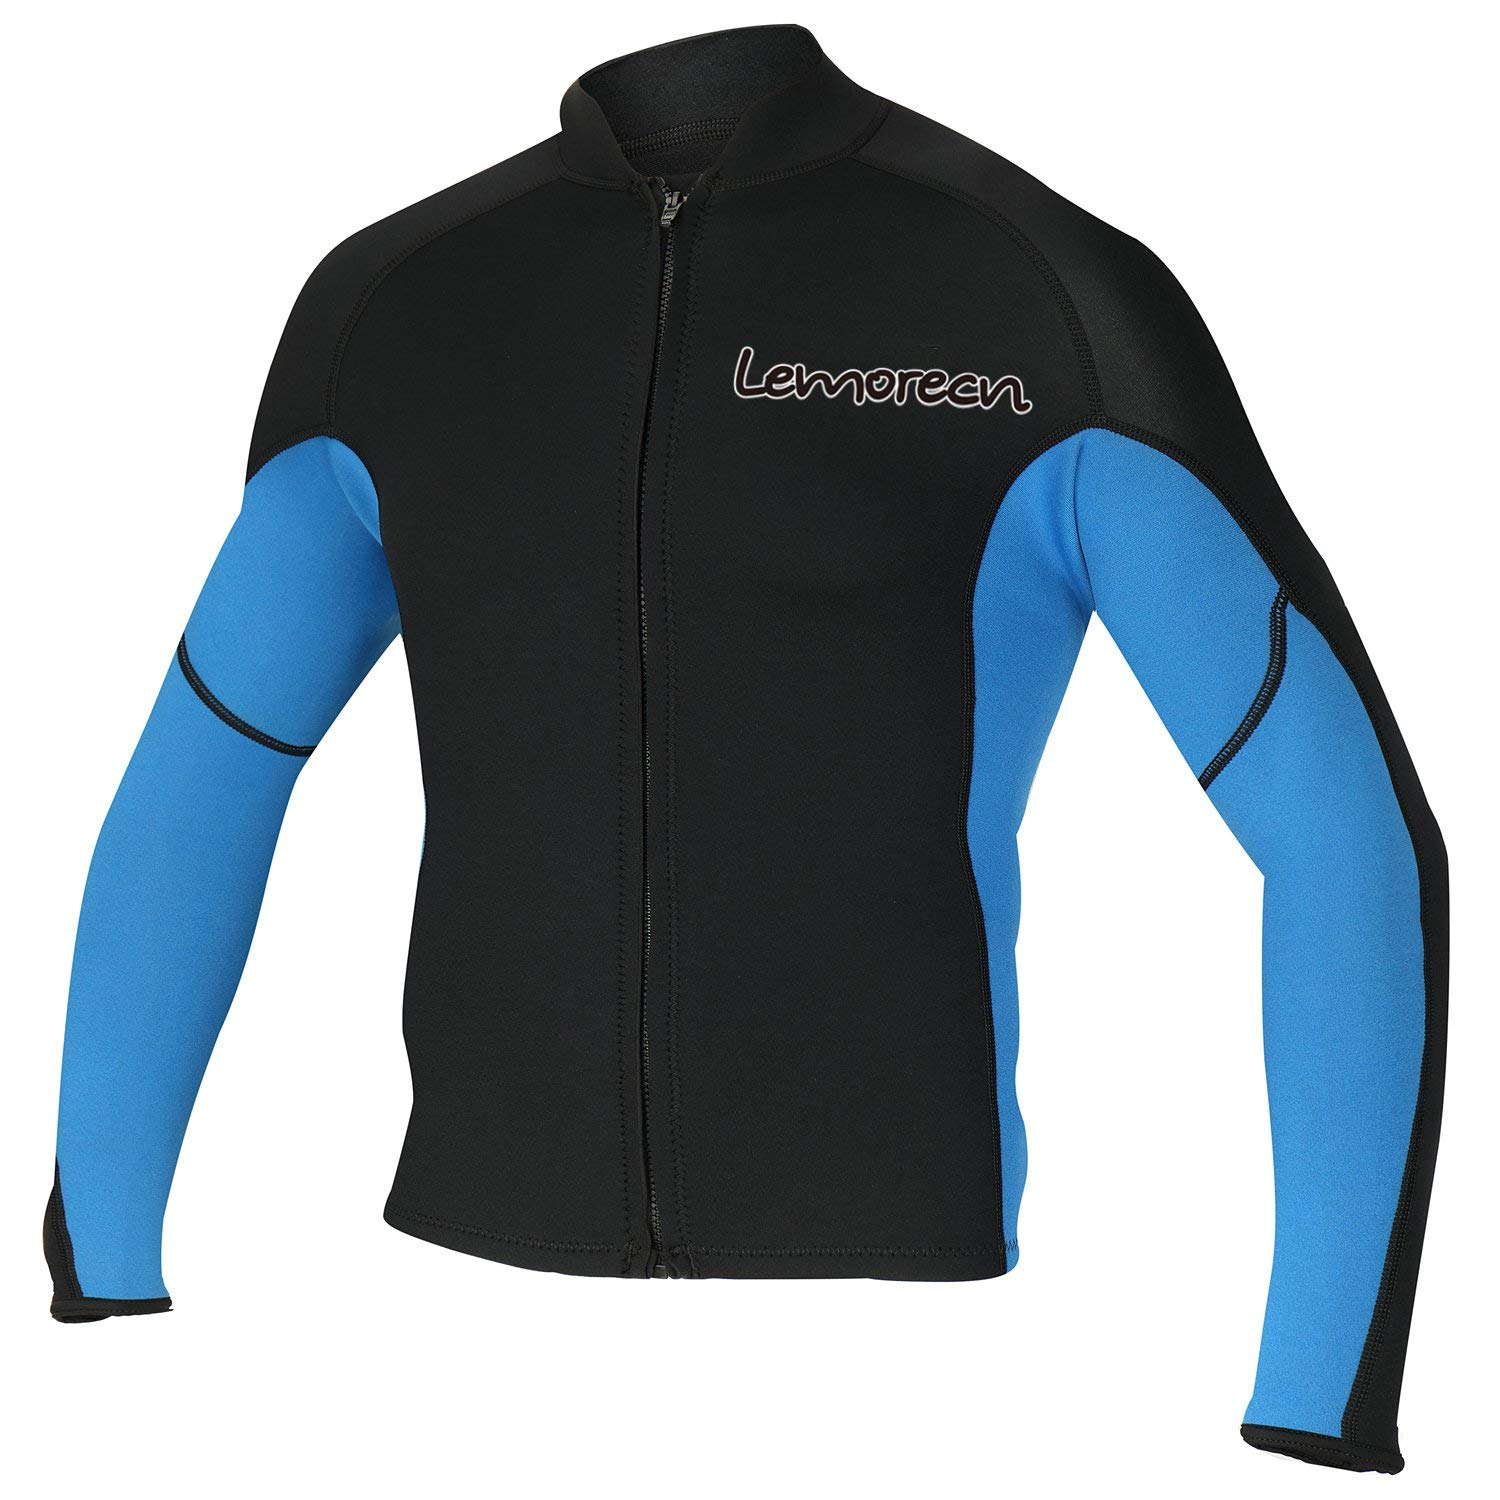 Lemorecn Men's 2mm Wetsuits Jacket Long Sleeve Neoprene Wetsuits Top (2021blue-2XL) by Lemorecn